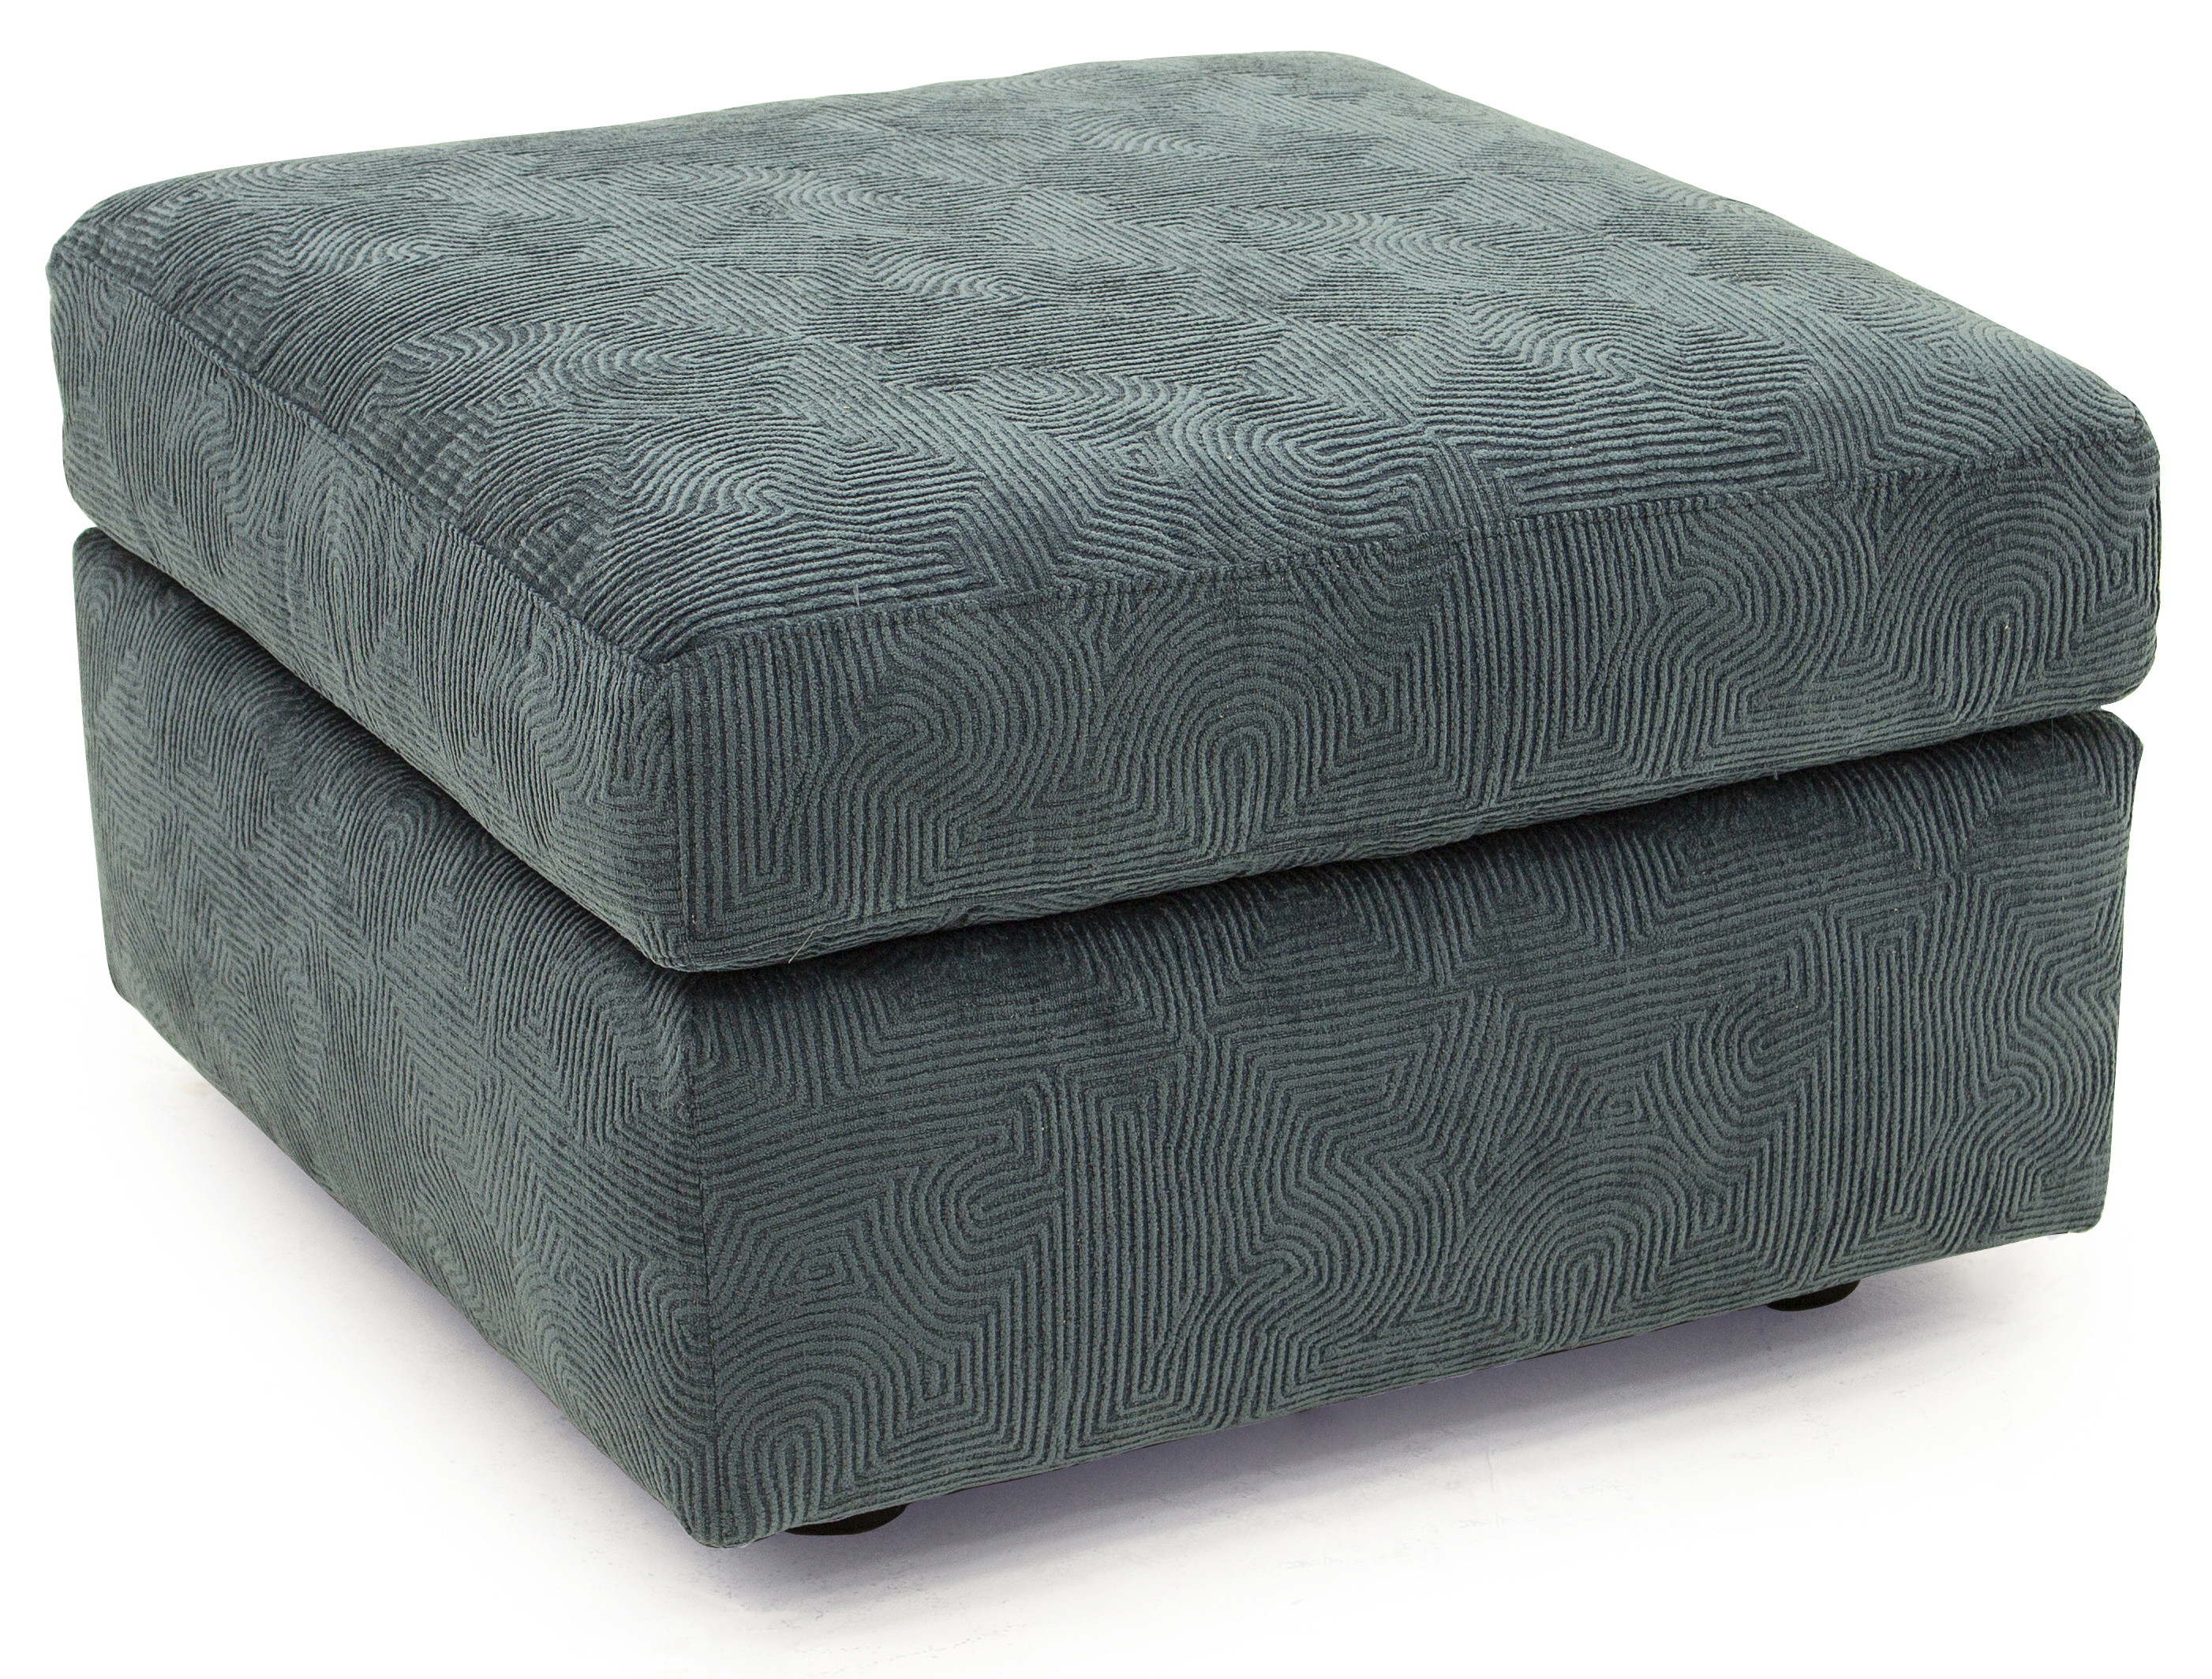 Danae Ottoman by Sam Moore at Jacksonville Furniture Mart